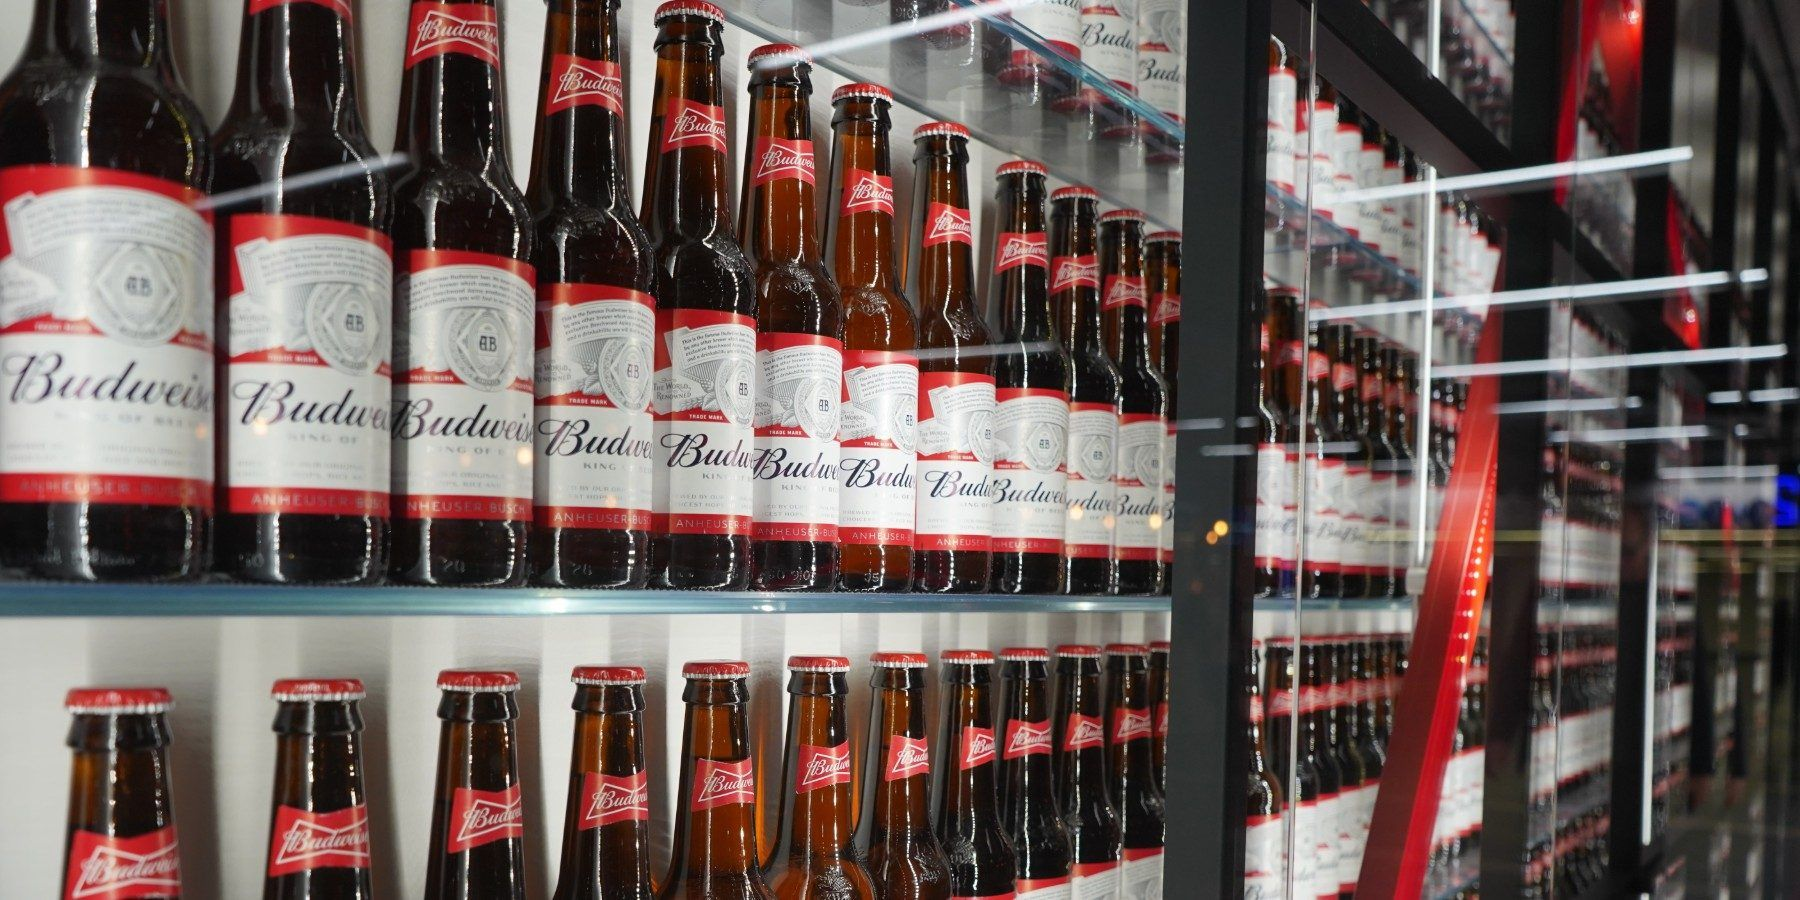 EGEB Budweiser's parent largest corporate green